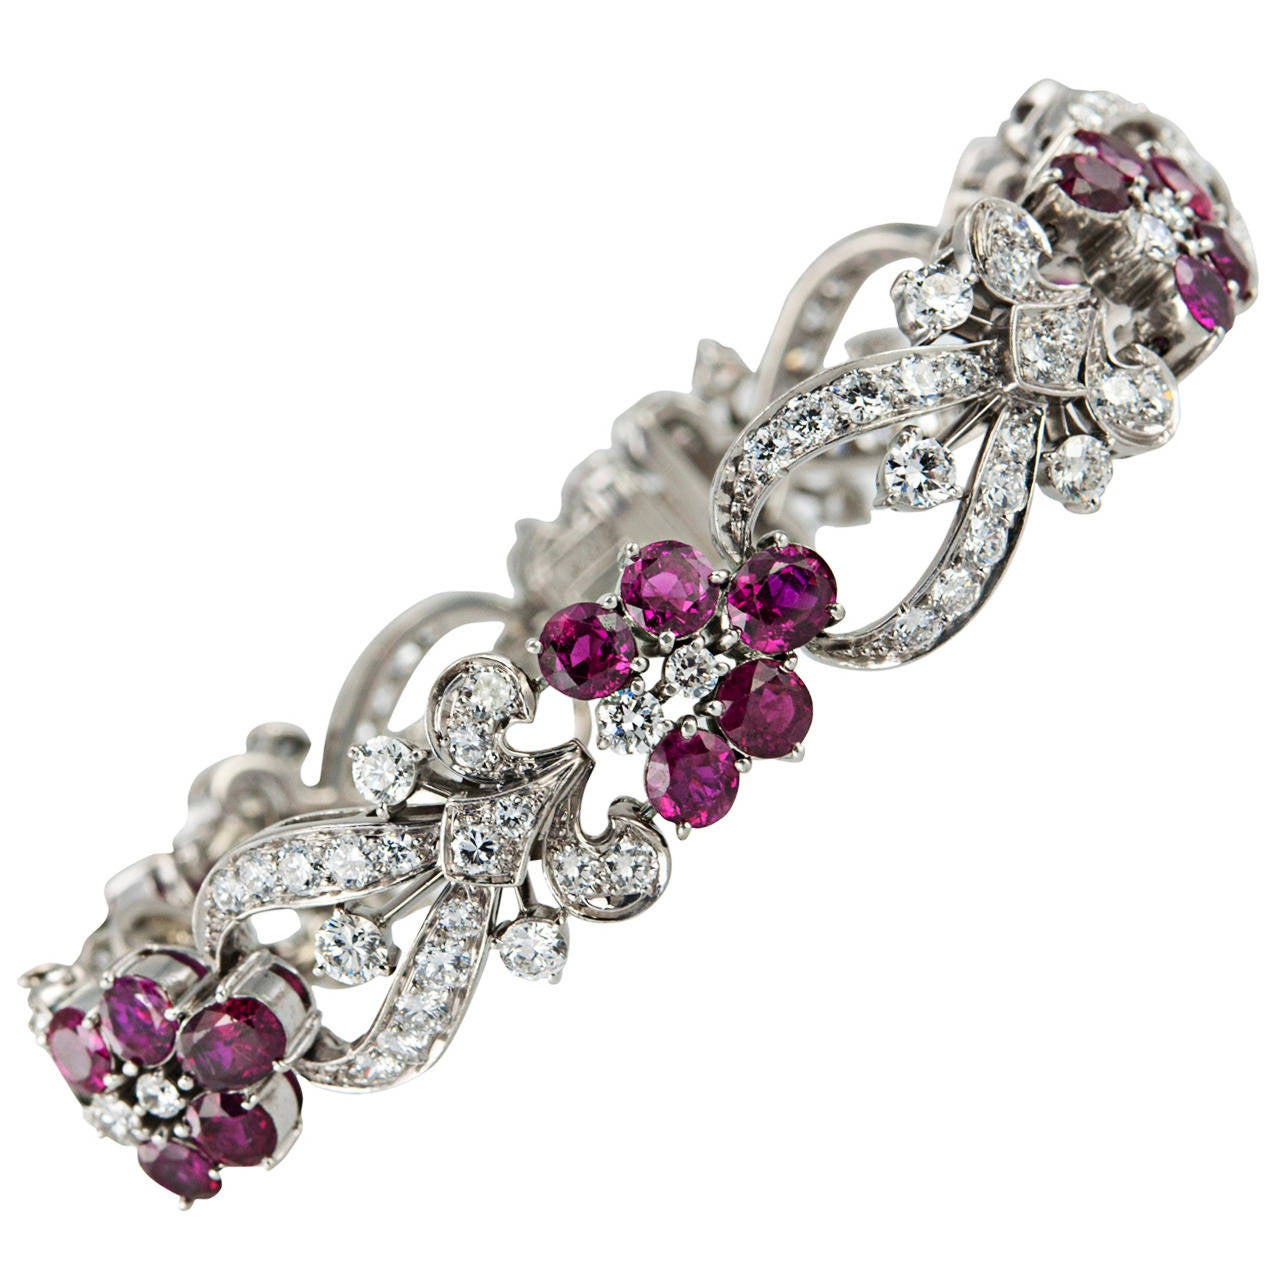 1940s Tiffany & Co. Ruby Diamond Palladium Floral Bracelet For Sale